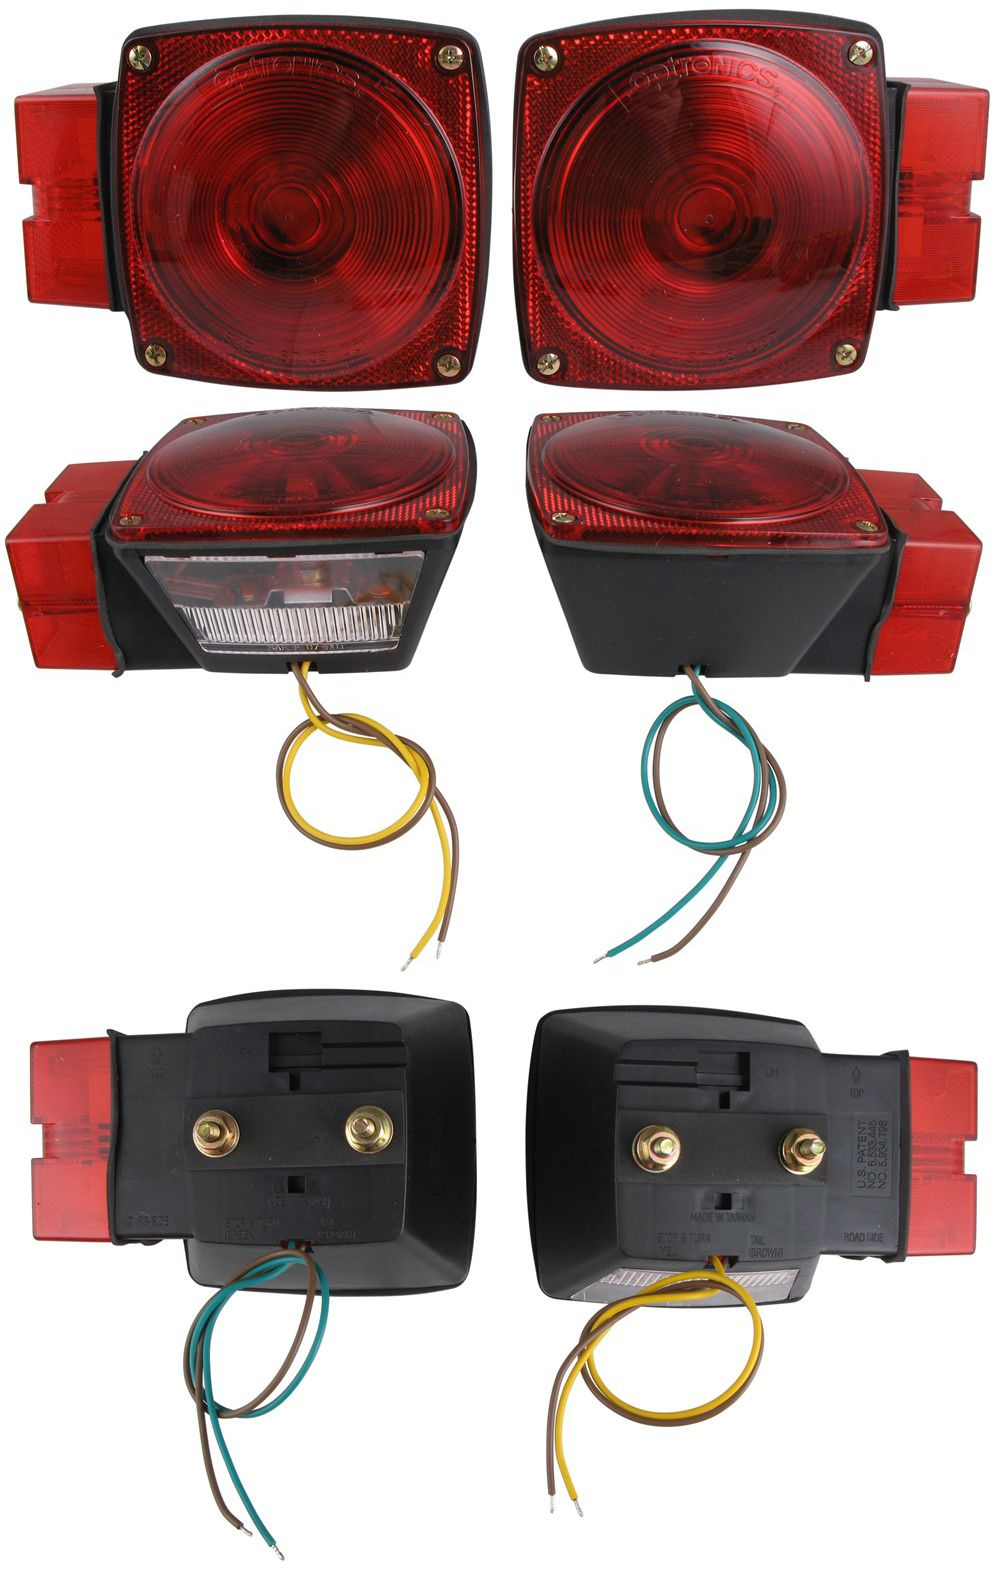 Red Submersible Trailer Light Kit With Stud Mount Lights License Wiring Mounting Bracket